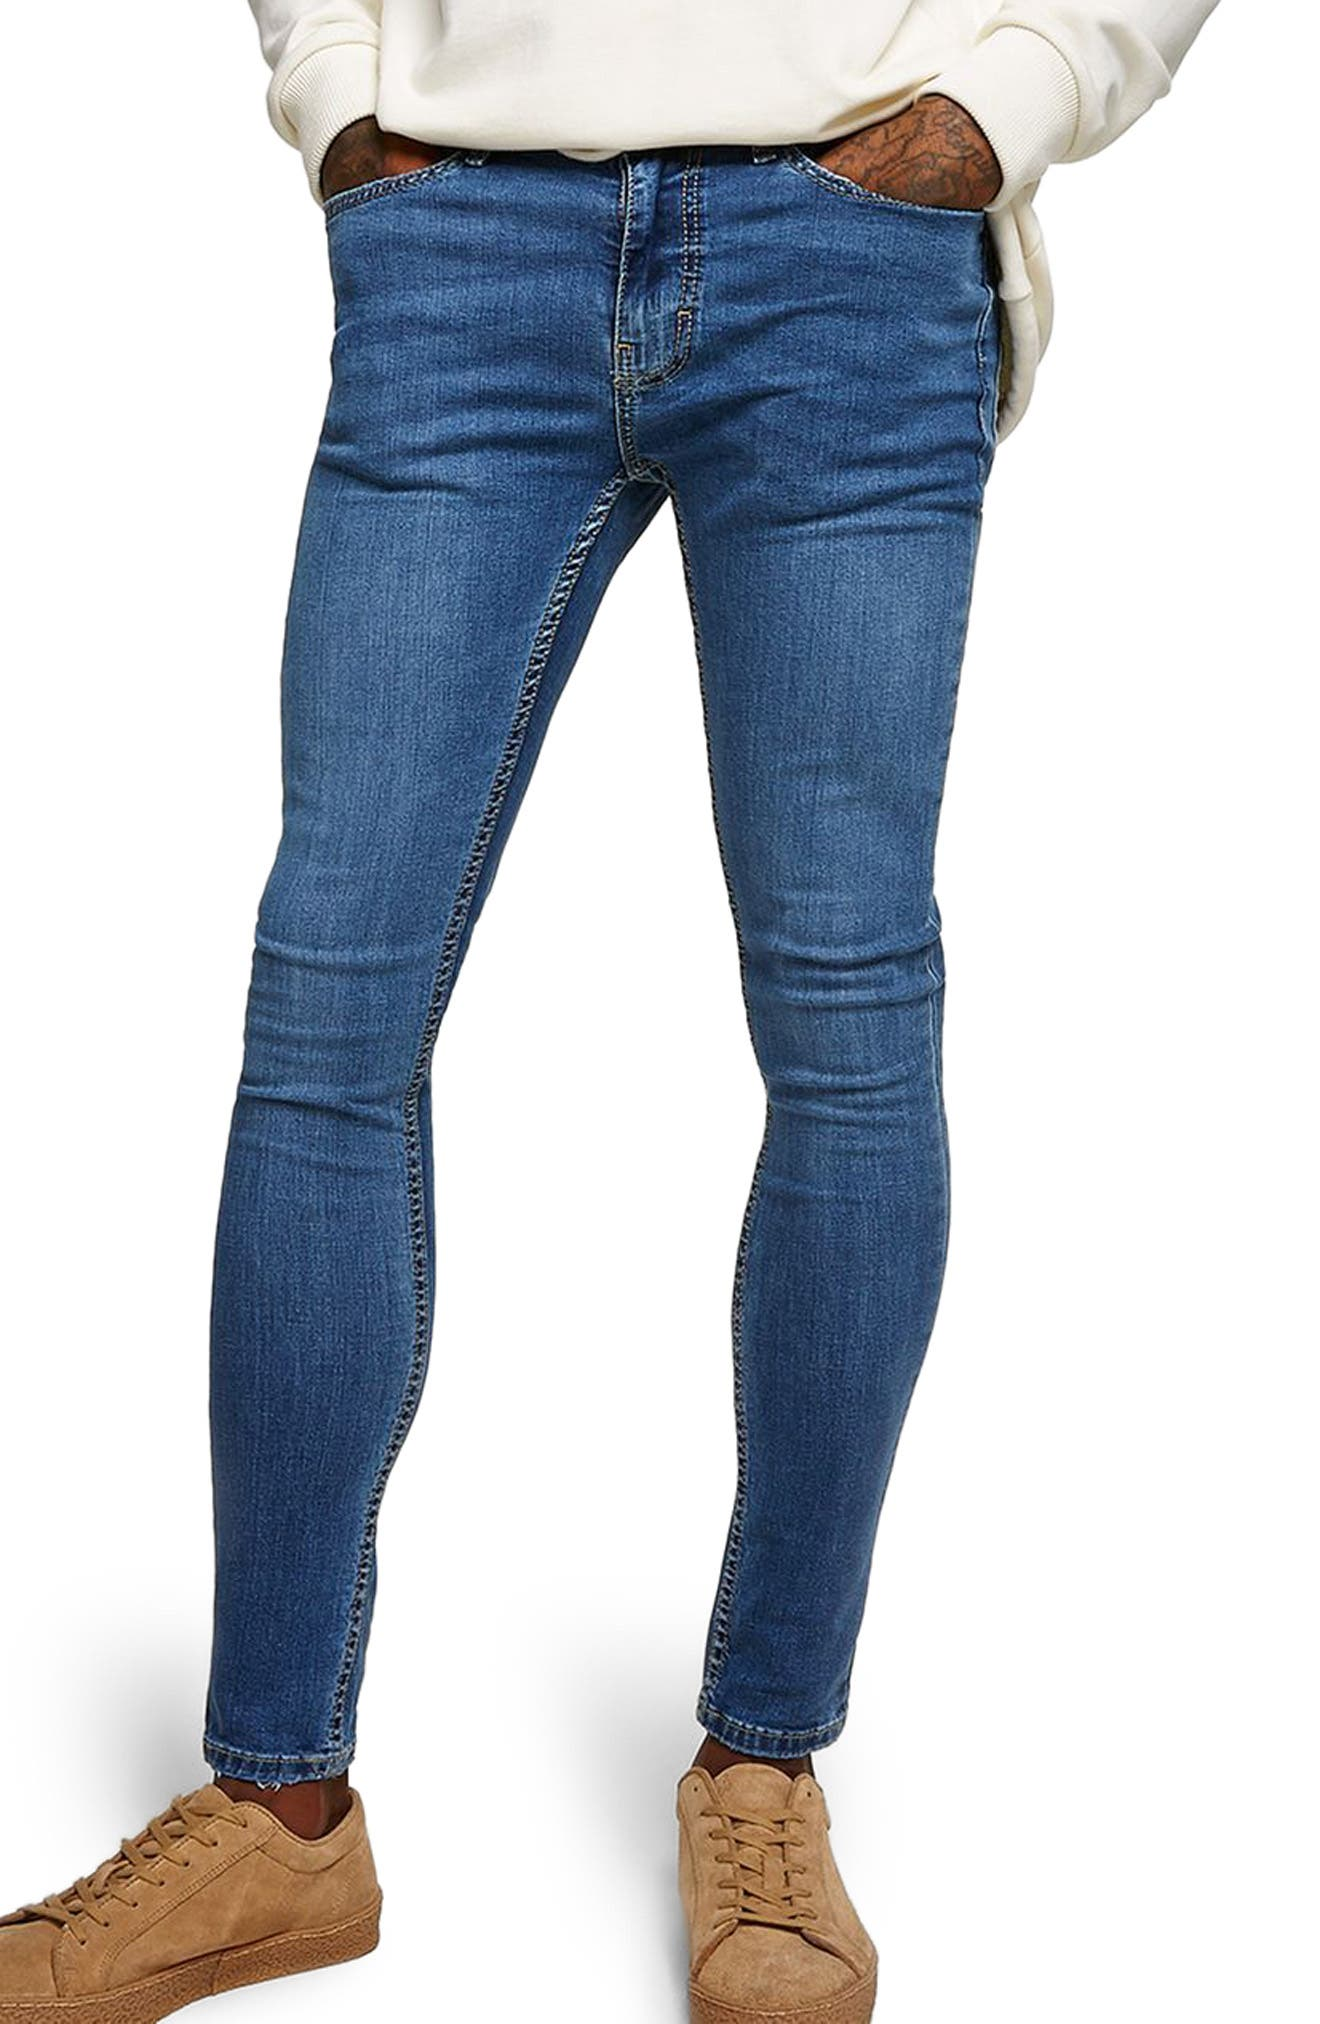 Skinny Fit Spray-On Jeans,                             Main thumbnail 1, color,                             Blue